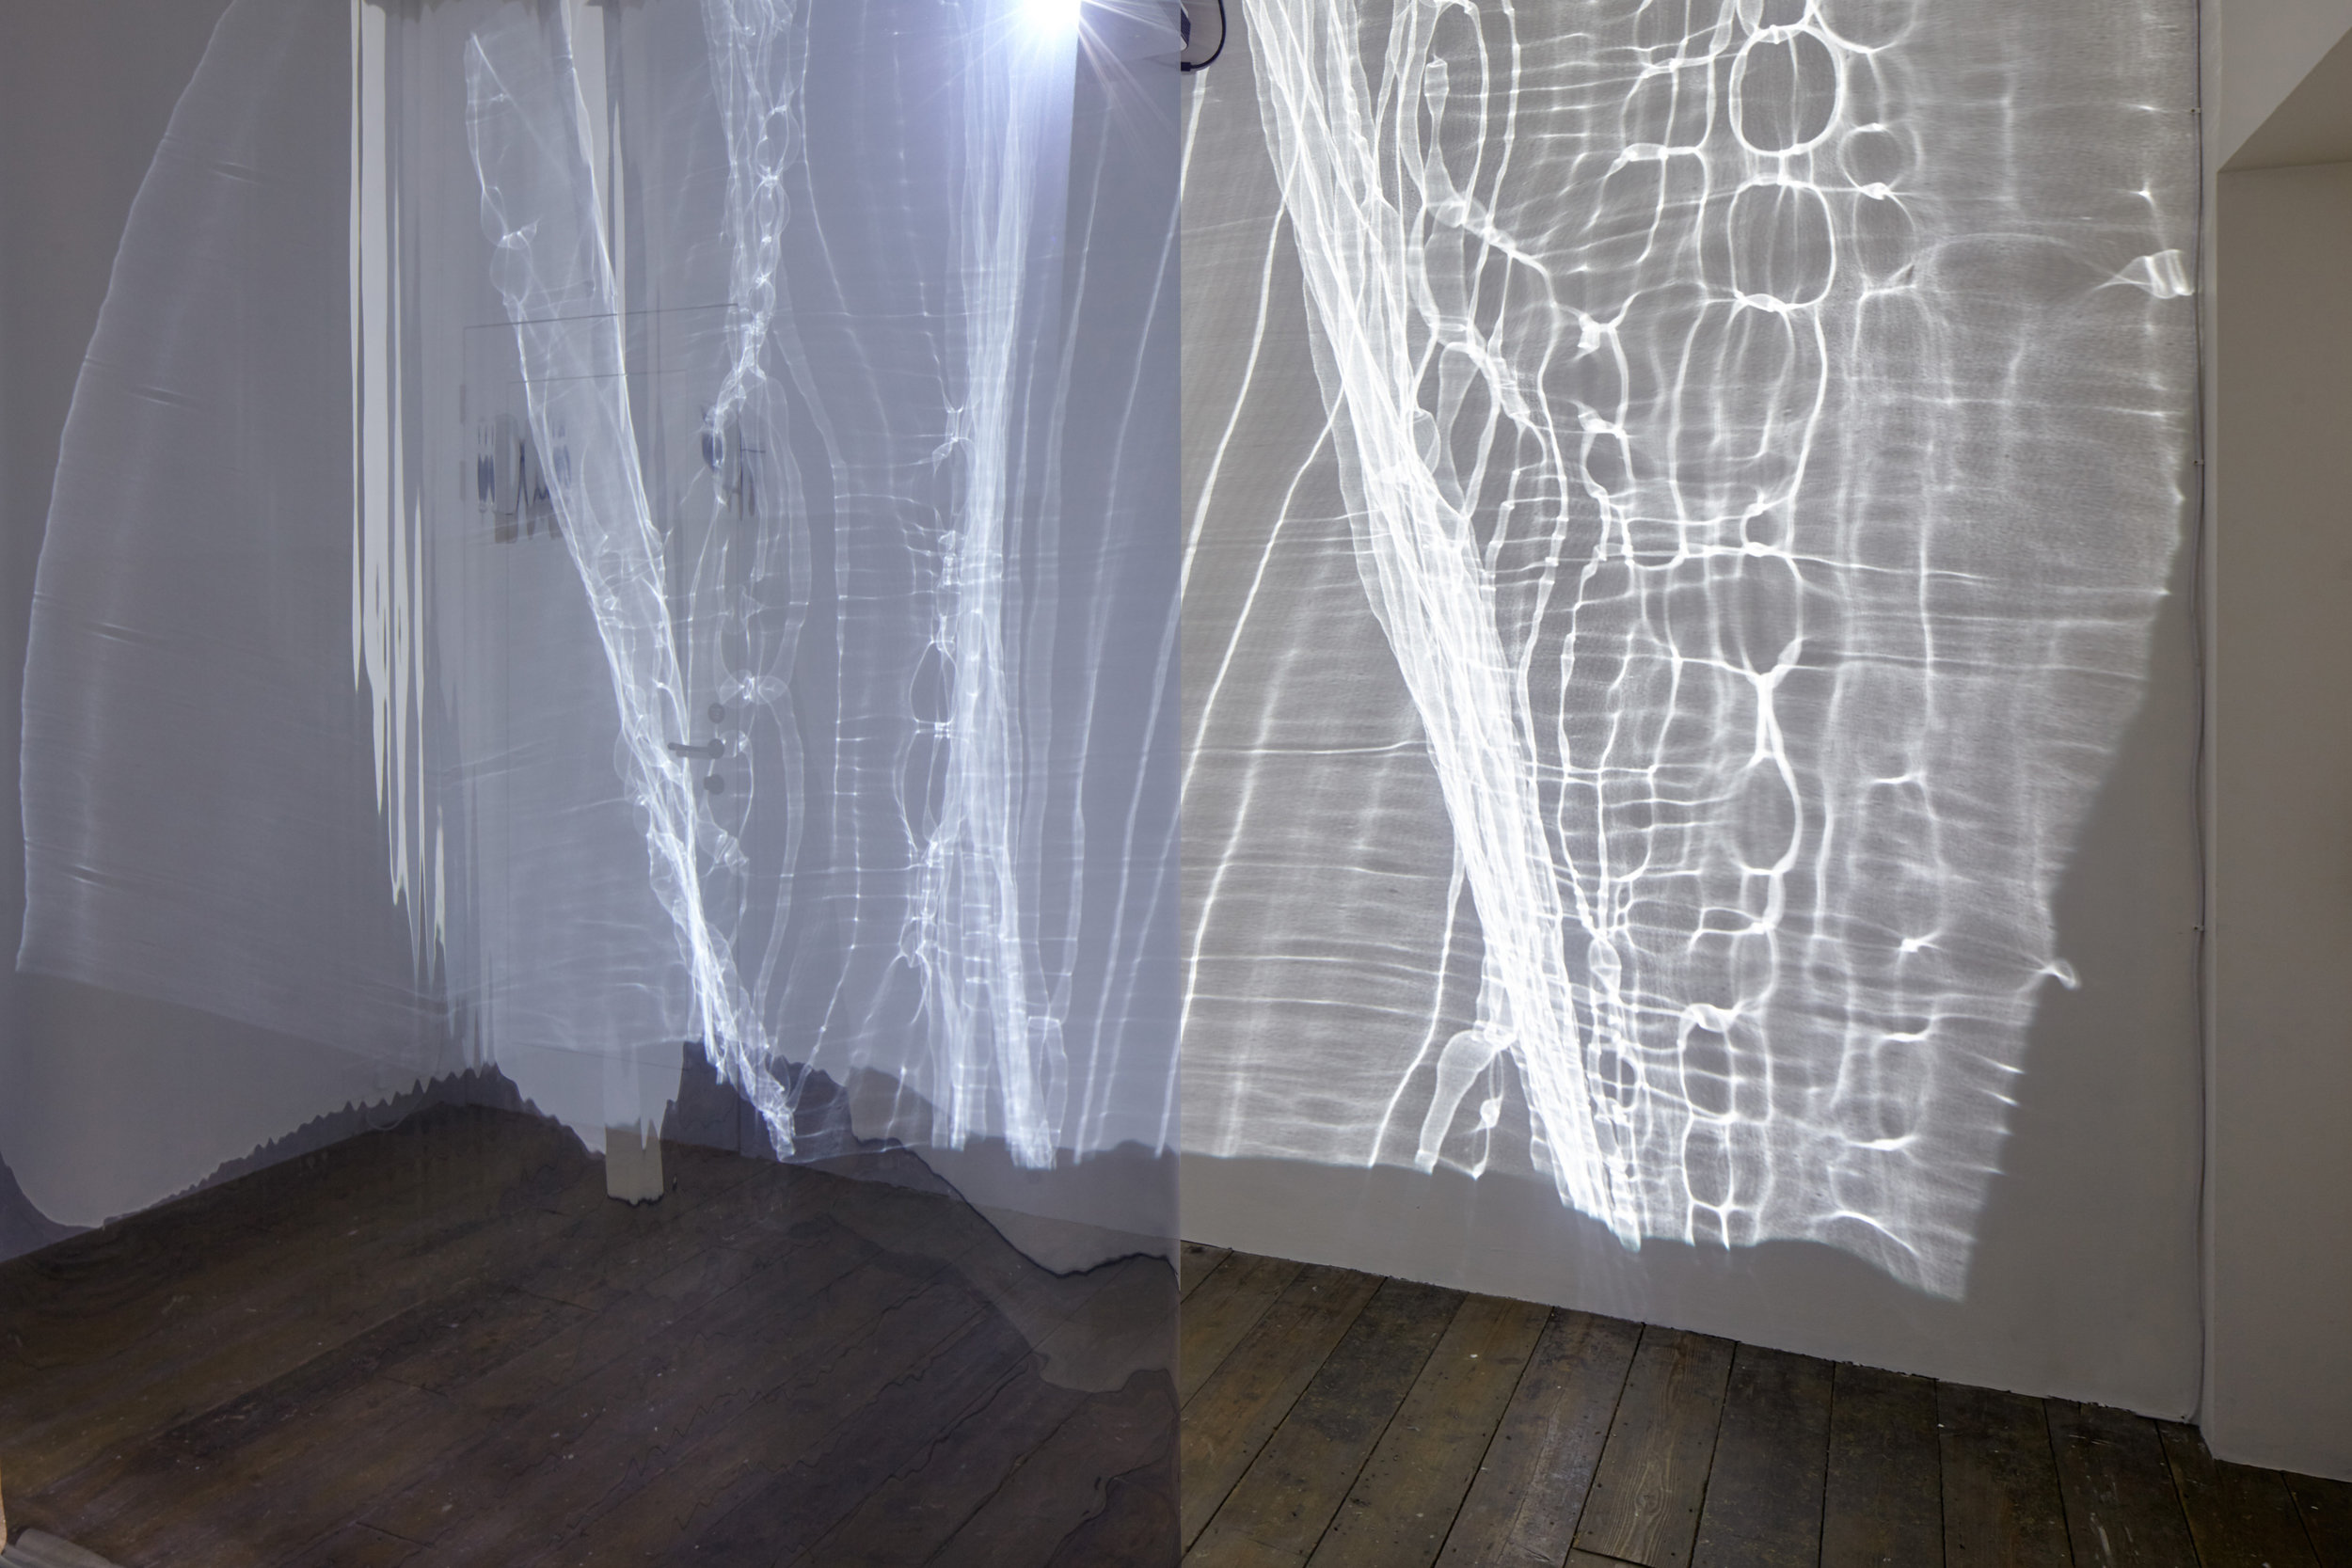 Participatory Installation - Audiovisual compositions spatialising the viewer's presence and inviting interaction with the artwork, the space and others.